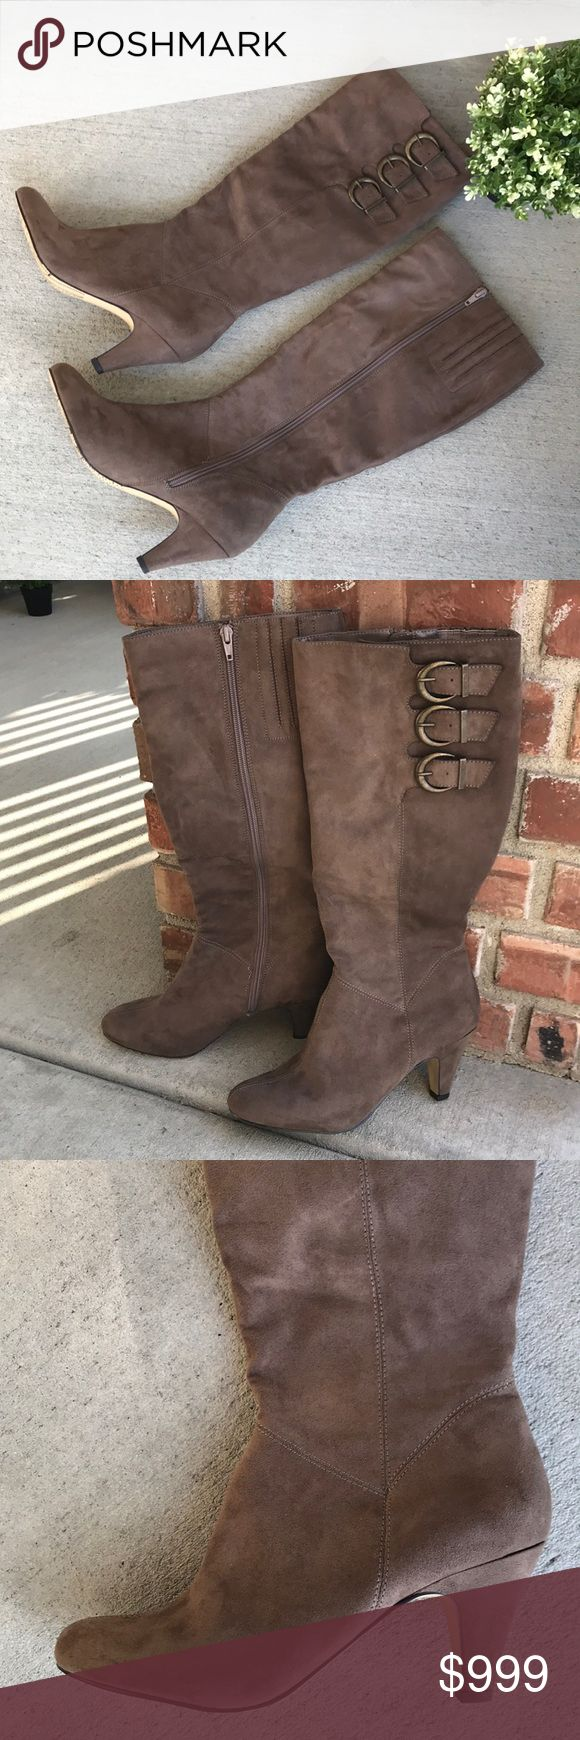 """Bella Vita Suede Boots Like new! 💛💛💛Love these!!! Bella Vita Suede-like man made material heeled  Boots. Size 8.5 Heel height 2 3/4 & boot height 18"""". Bella Vita Shoes Heeled Boots"""